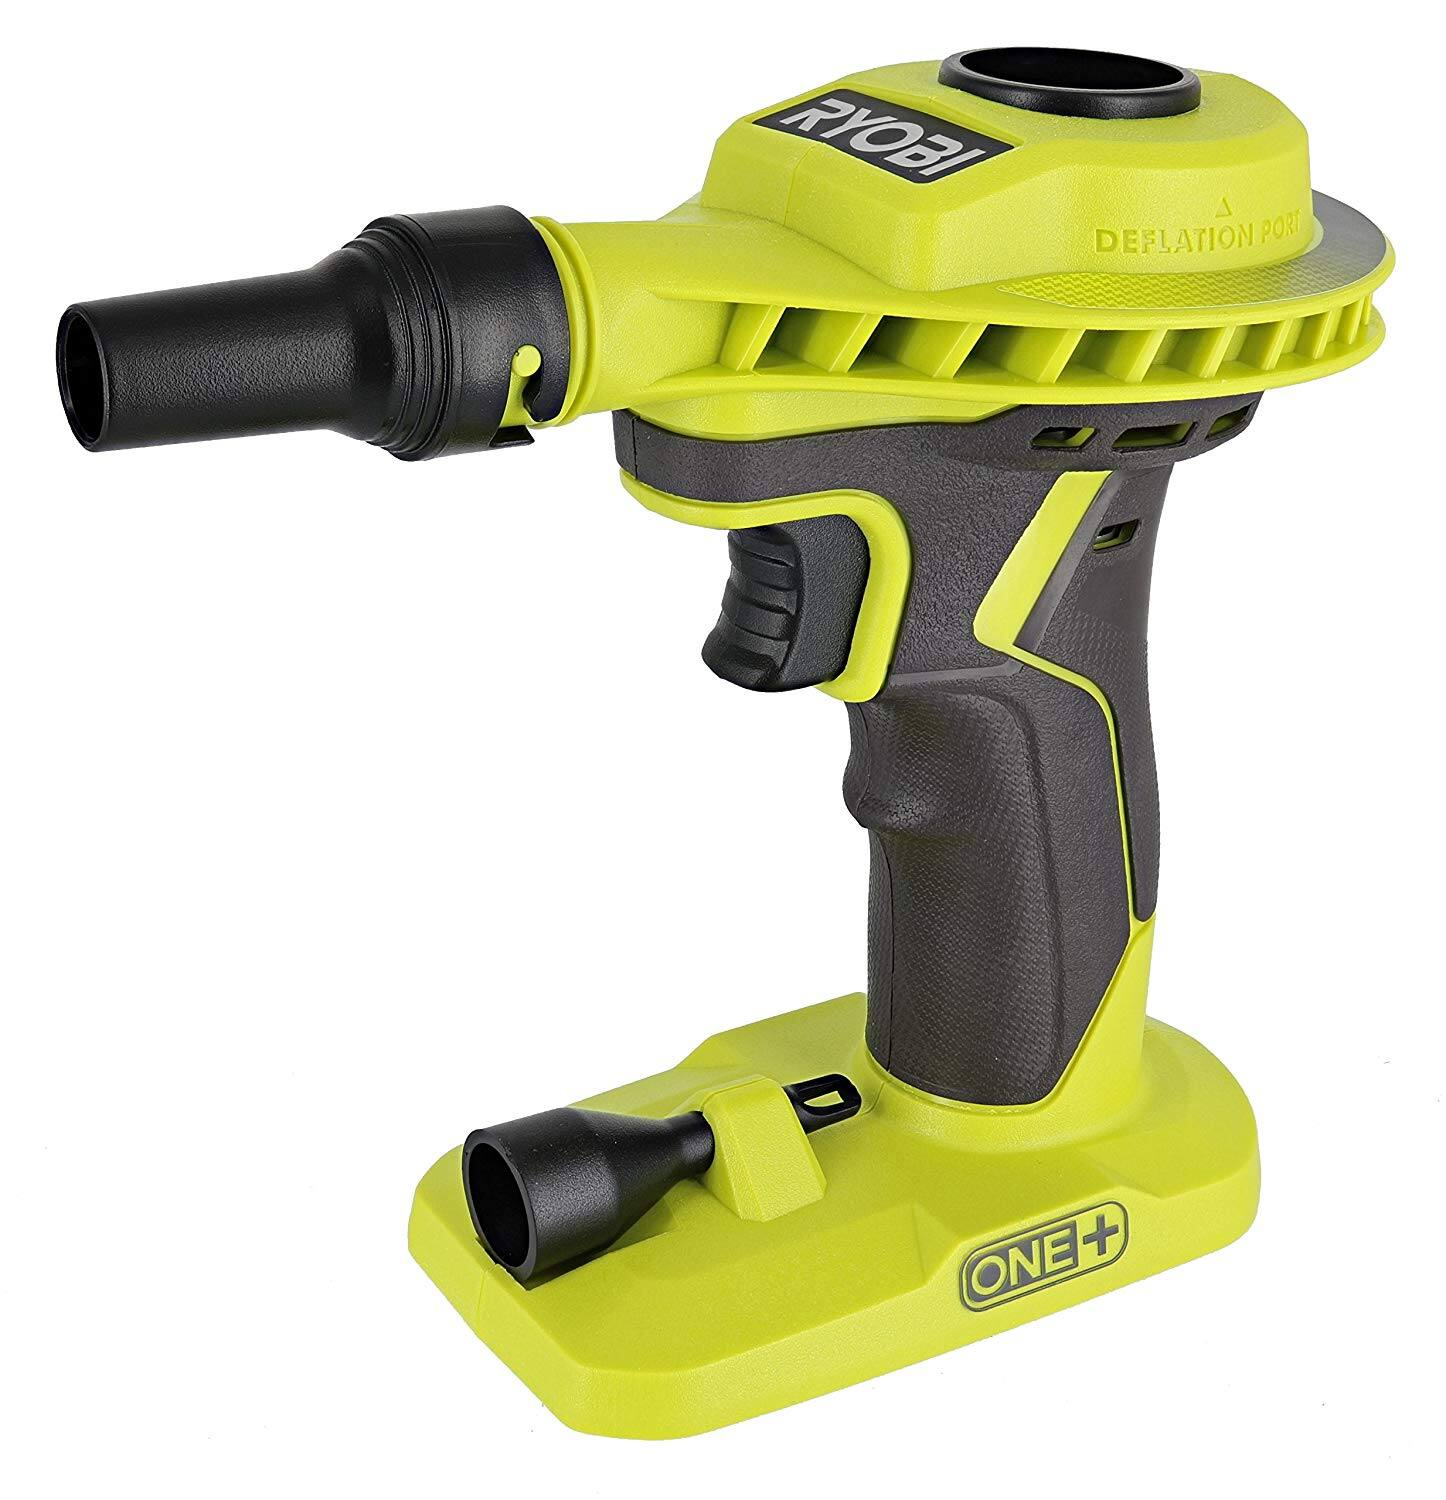 RYOBI 18-Volt ONE+ Cordless High Volume Power Inflator (Tool Only) - Home Depot in store only clearance, YMMV $7.53